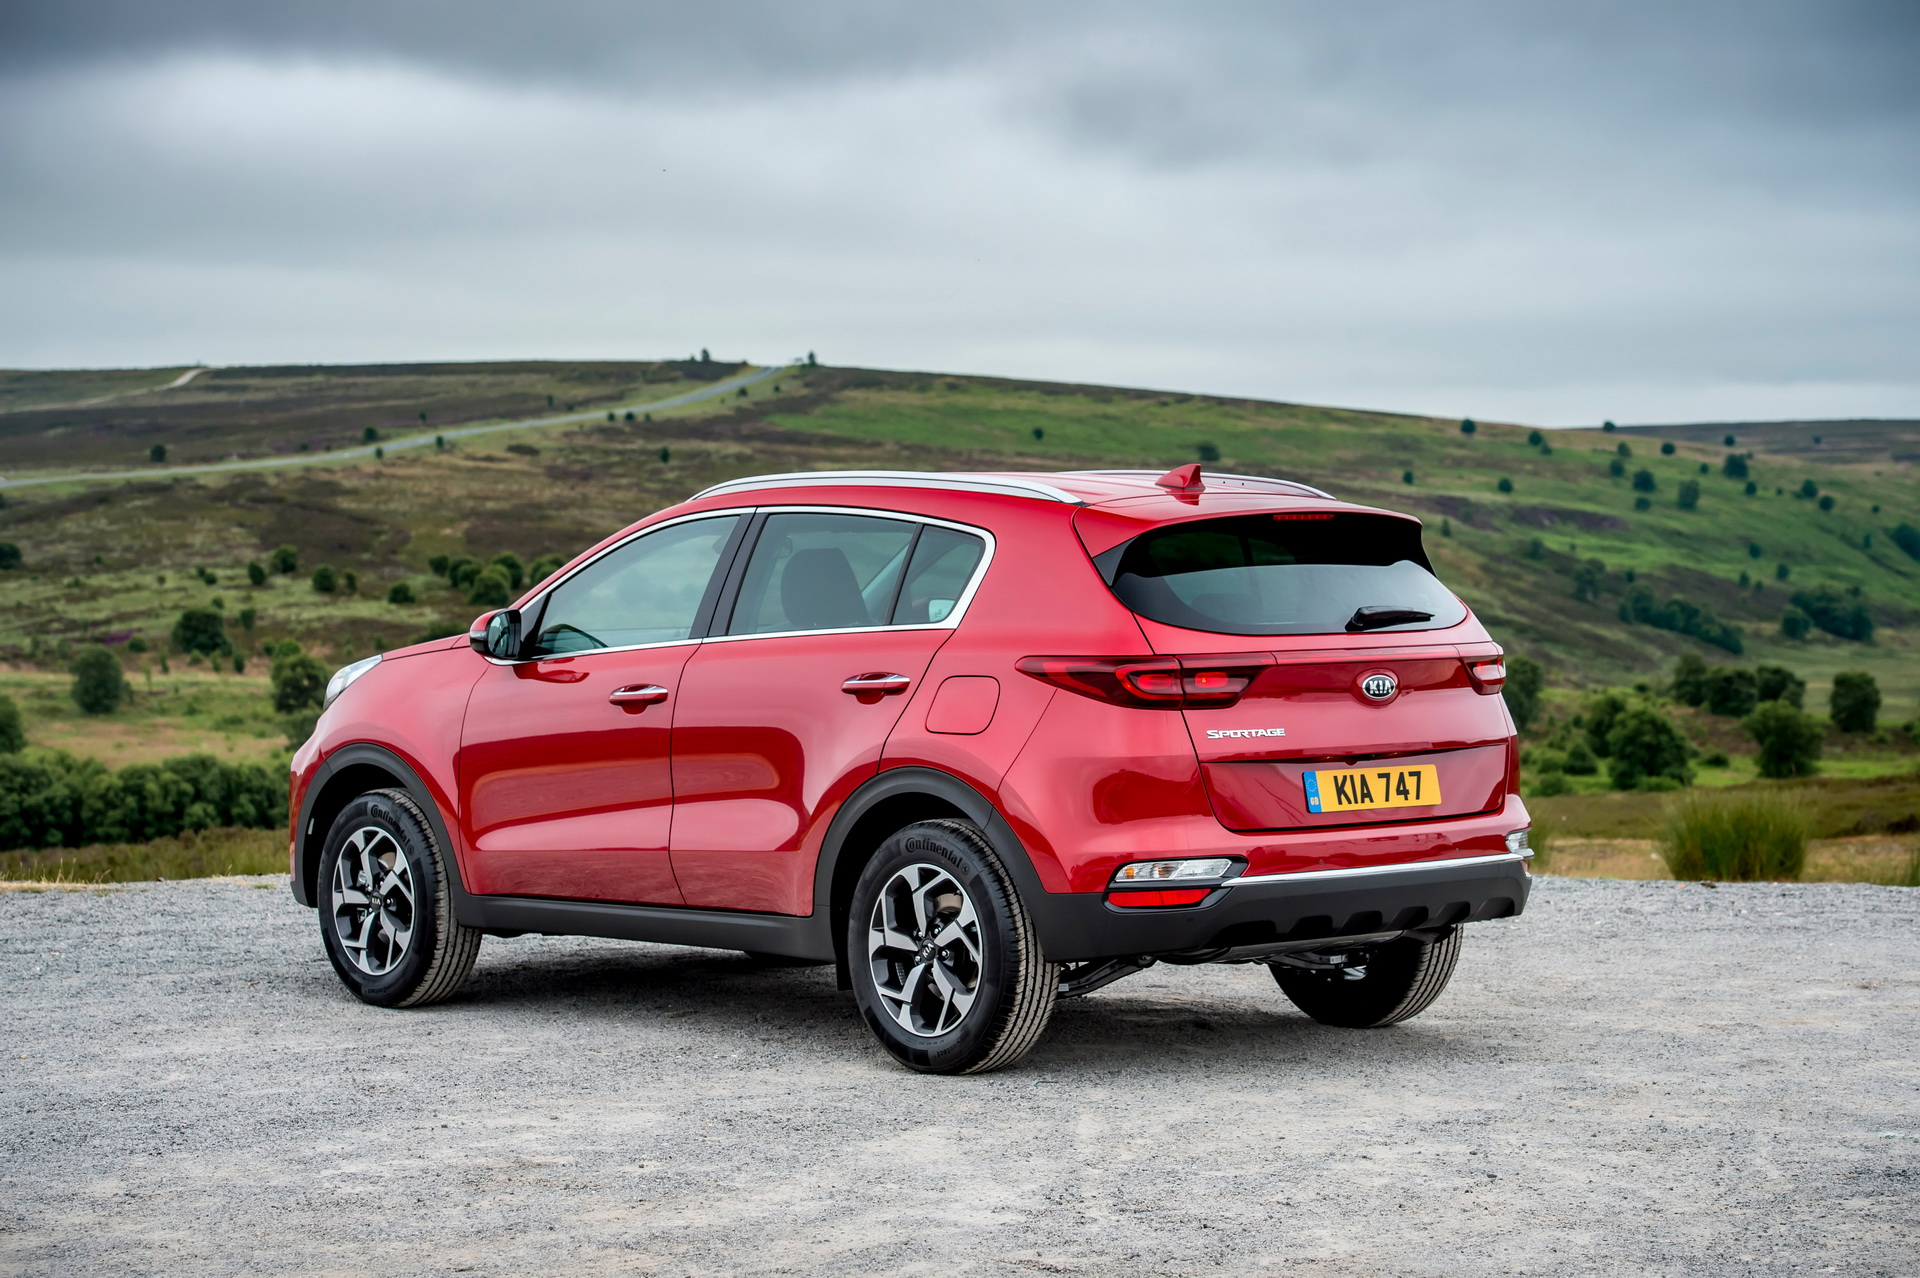 2019 kia sportage launched in the uk gains new special edition 25 model carscoops. Black Bedroom Furniture Sets. Home Design Ideas